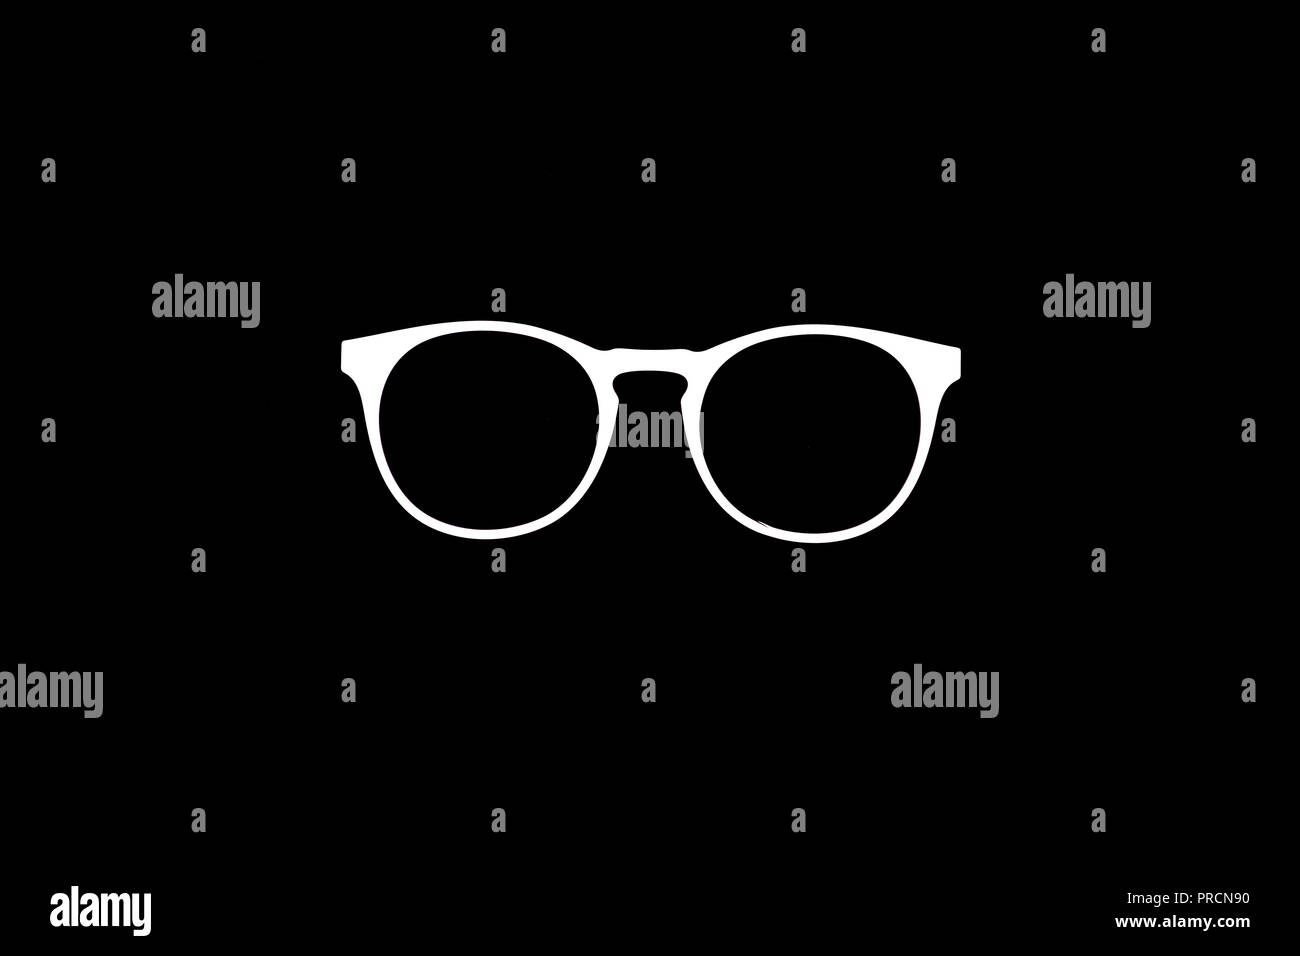 3f7ddec40a8 Graphic image of white sunglasses frames against black background - Stock  Image